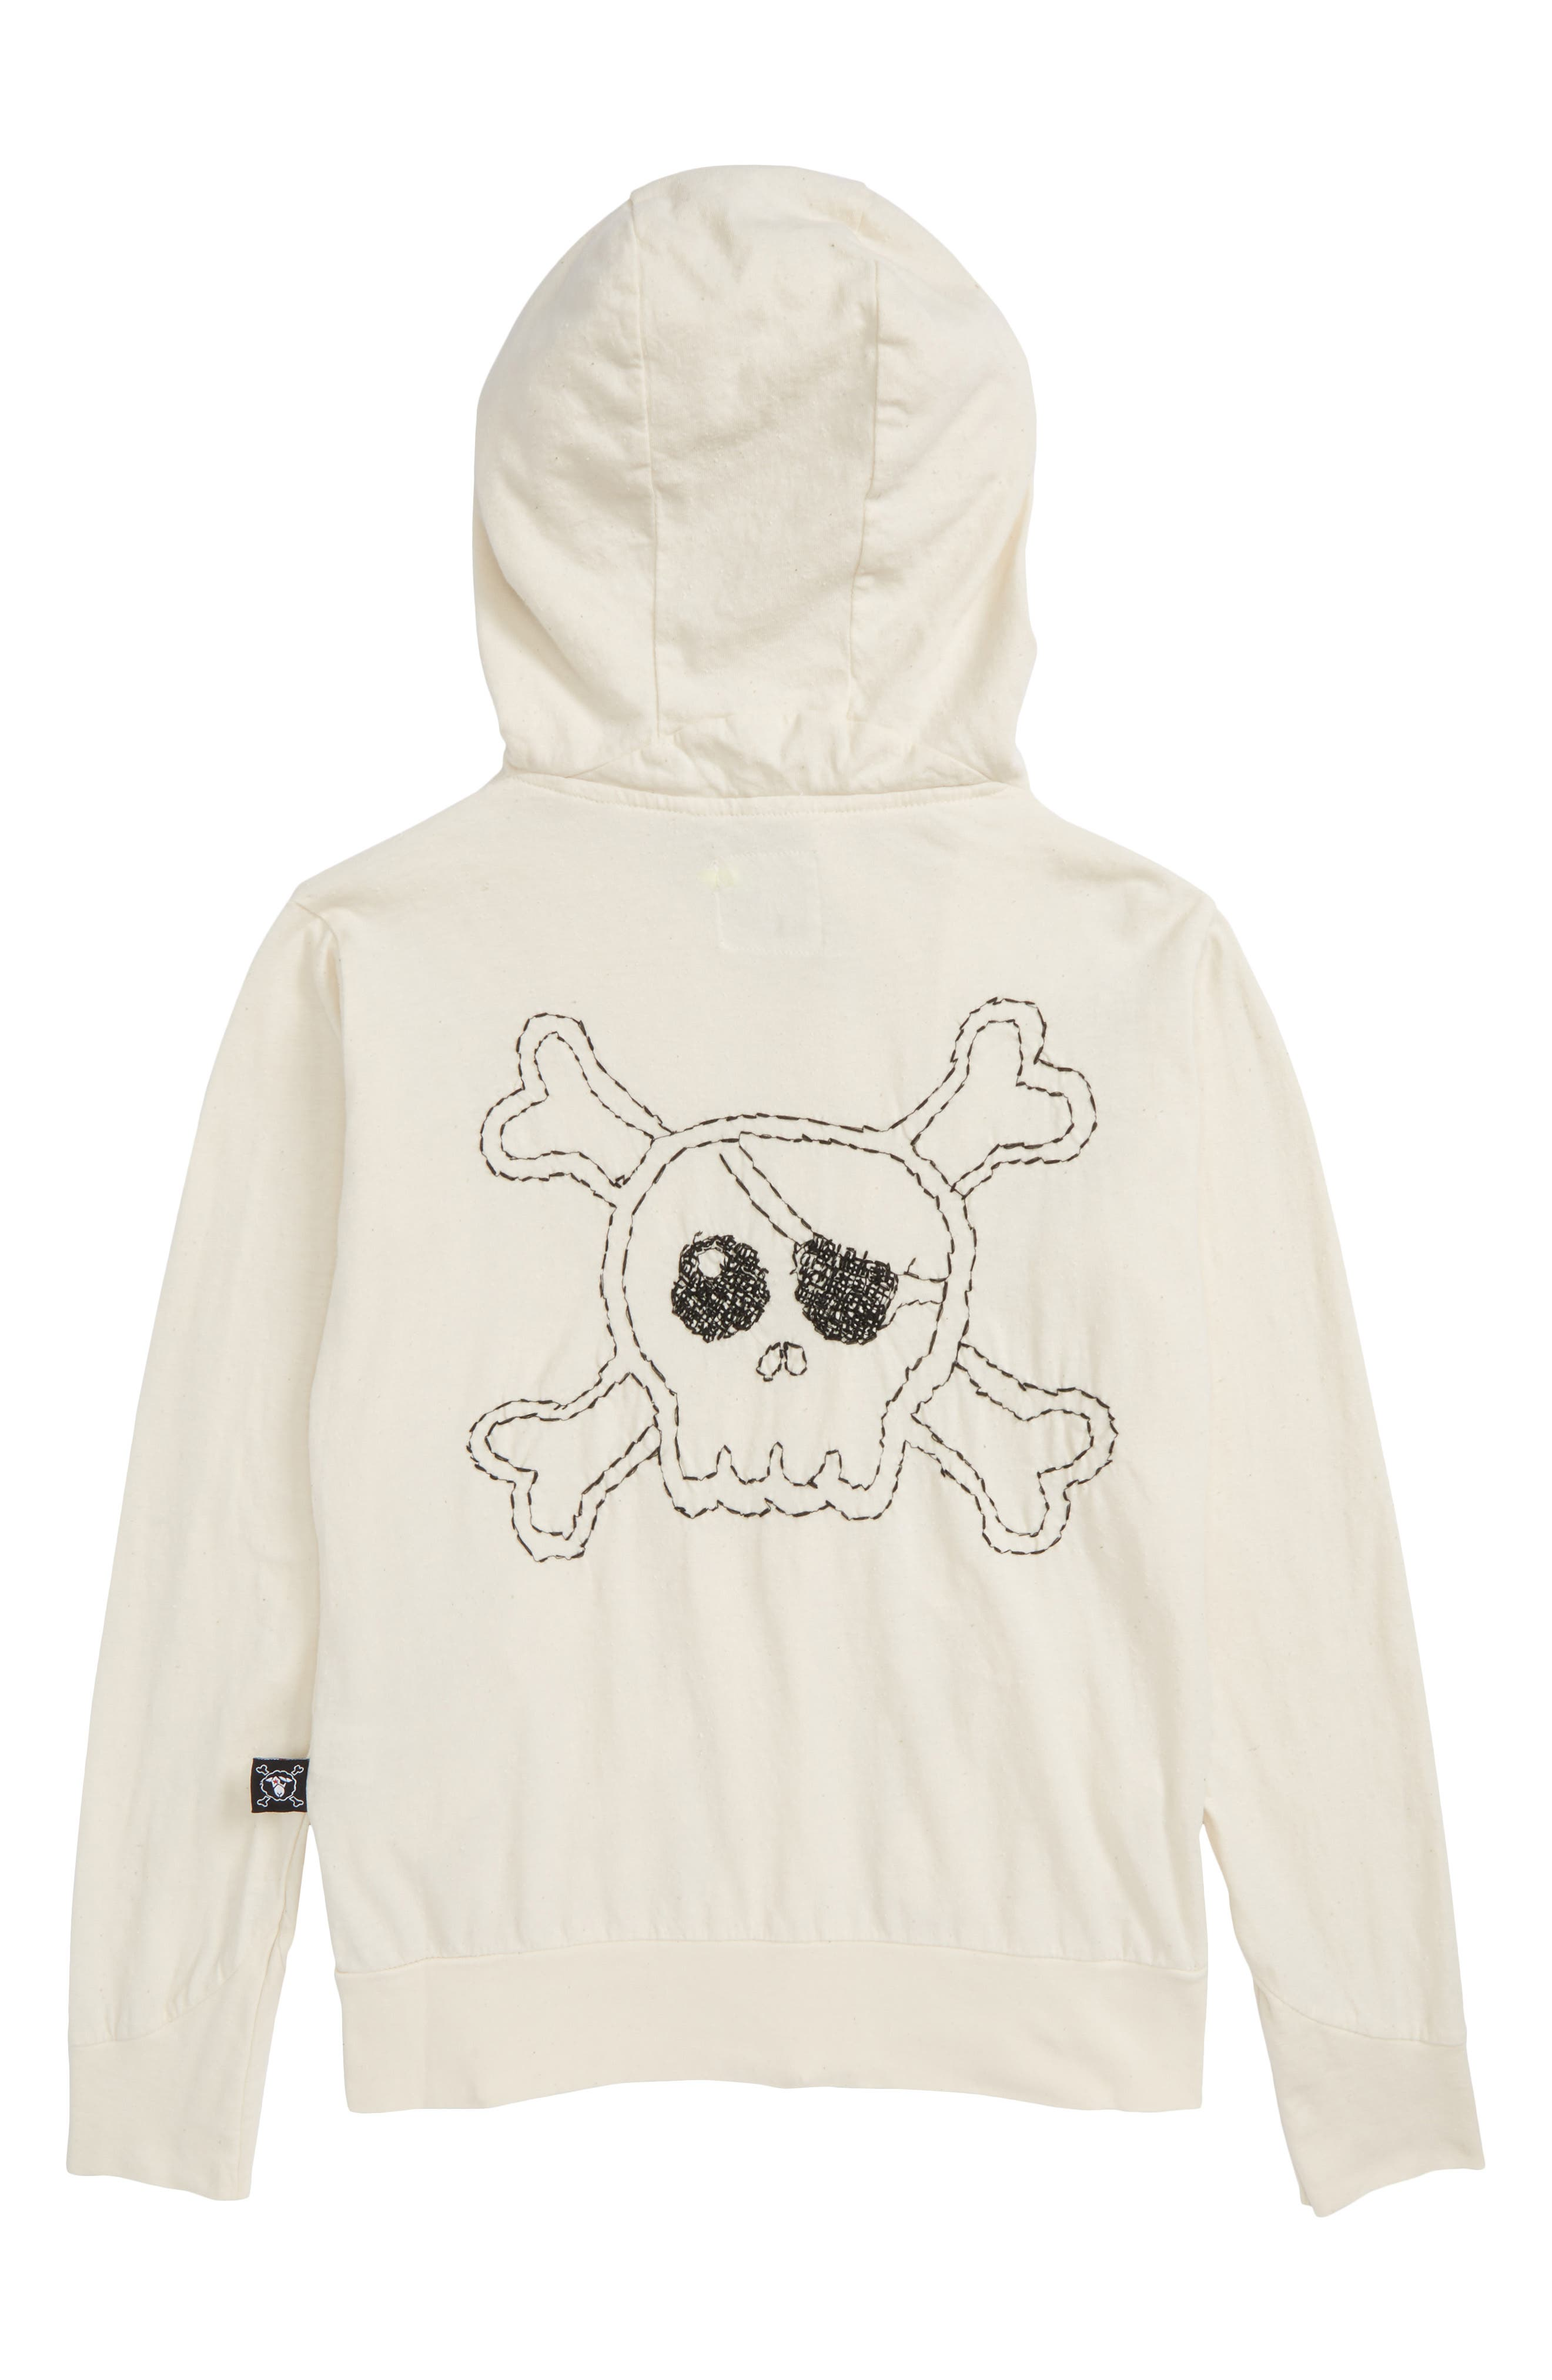 Embroidered Skull Zip Front Hoodie,                             Alternate thumbnail 2, color,                             White